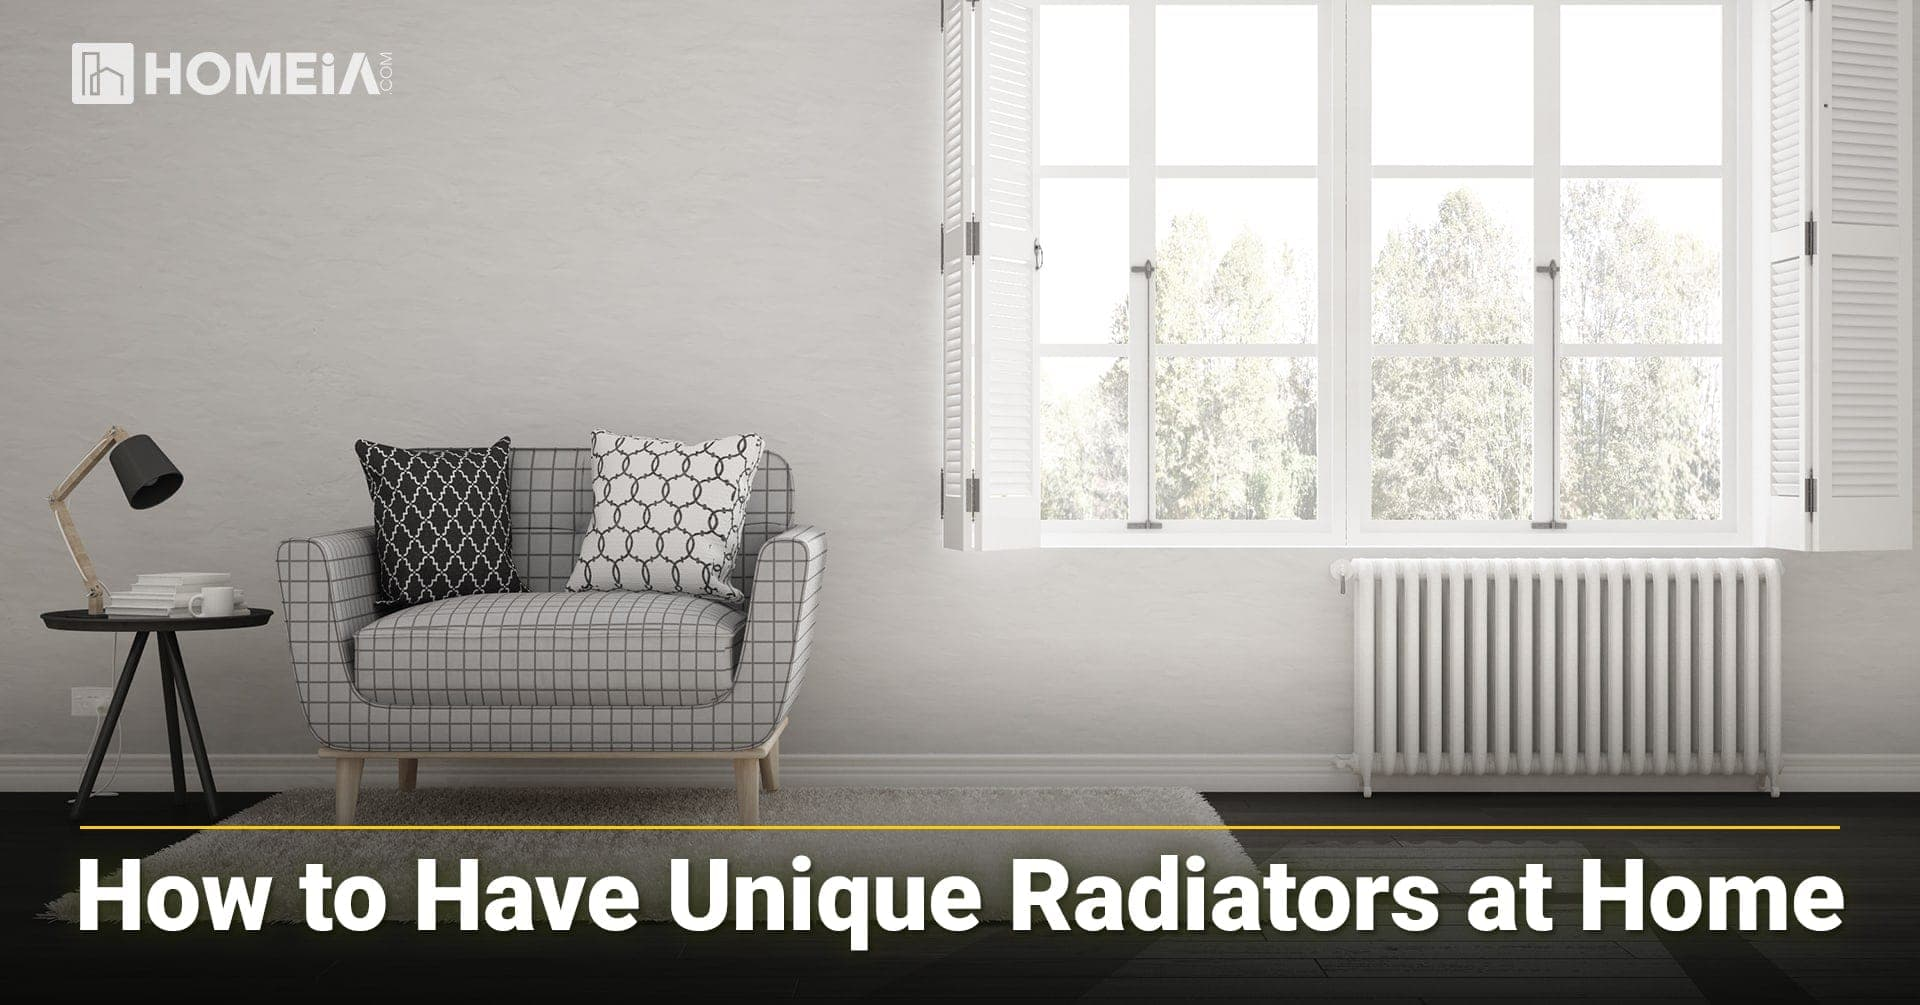 How to Have Unique Radiators at Home